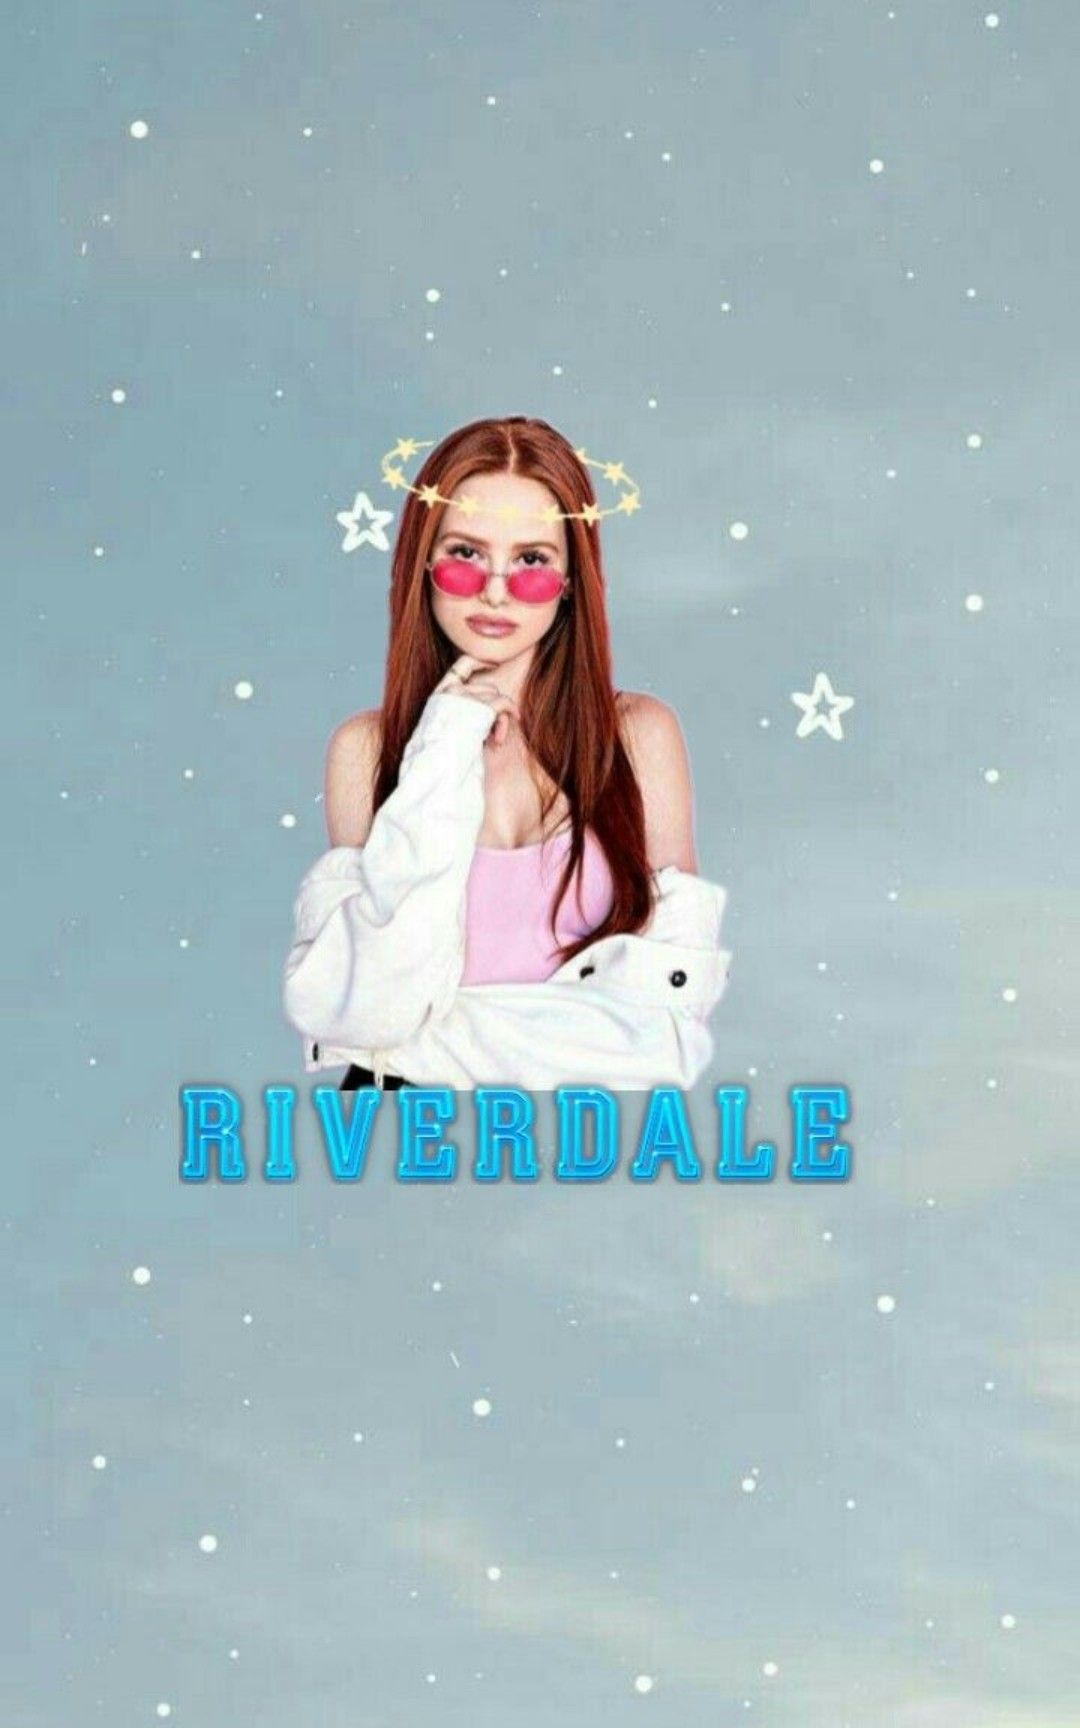 Pin By Addison Crossley On Kartinki Riverdale Cheryl Riverdale Funny Riverdale Characters